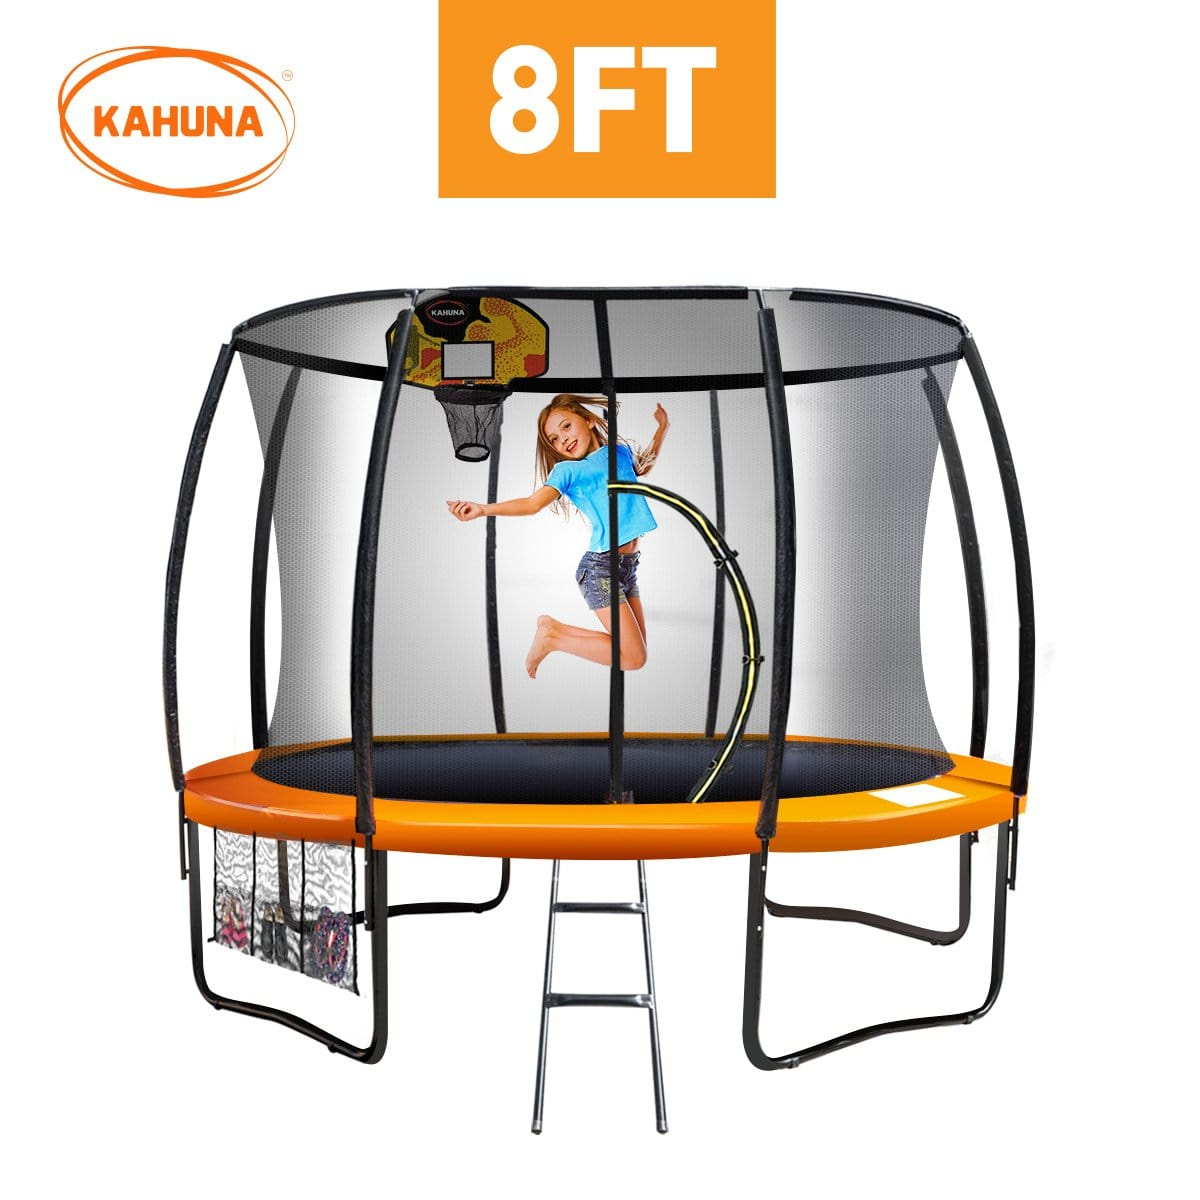 Kahuna Trampoline 8 ft with Basketball set - Orange